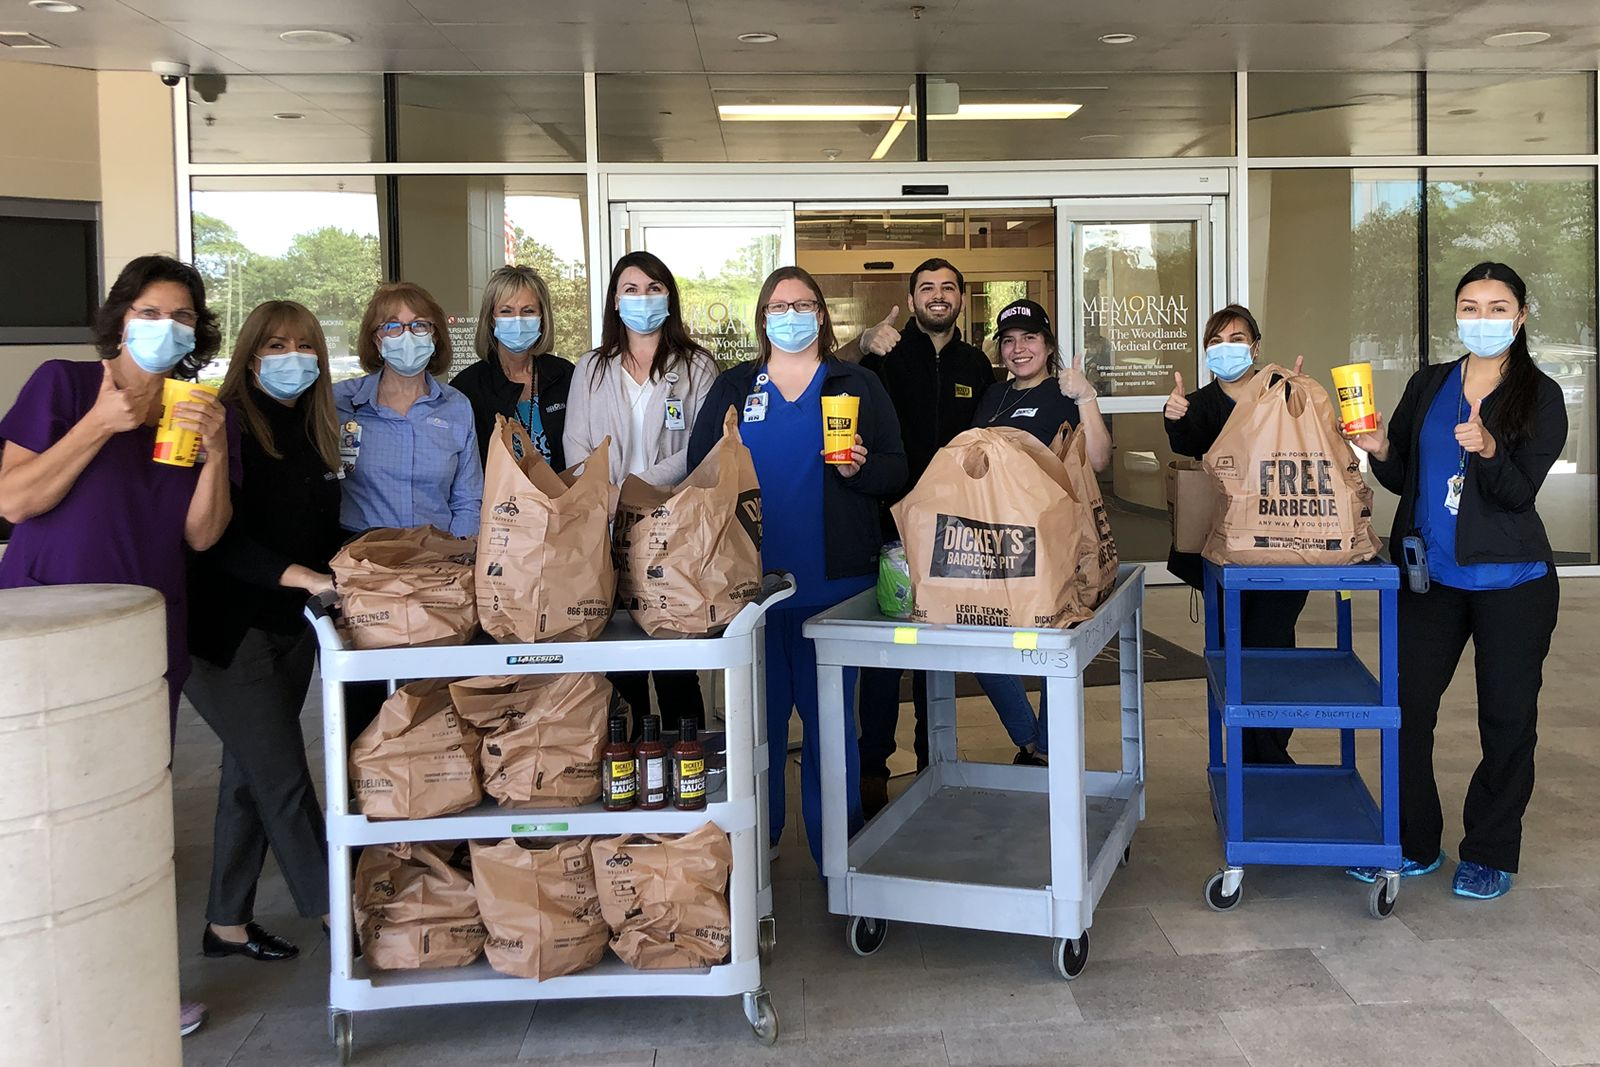 Houston, TX Dickey's Owner Operator Alex Abdulwahad and his team dropped off free barbecue for the staff at Memorial Hermann Medical Center.